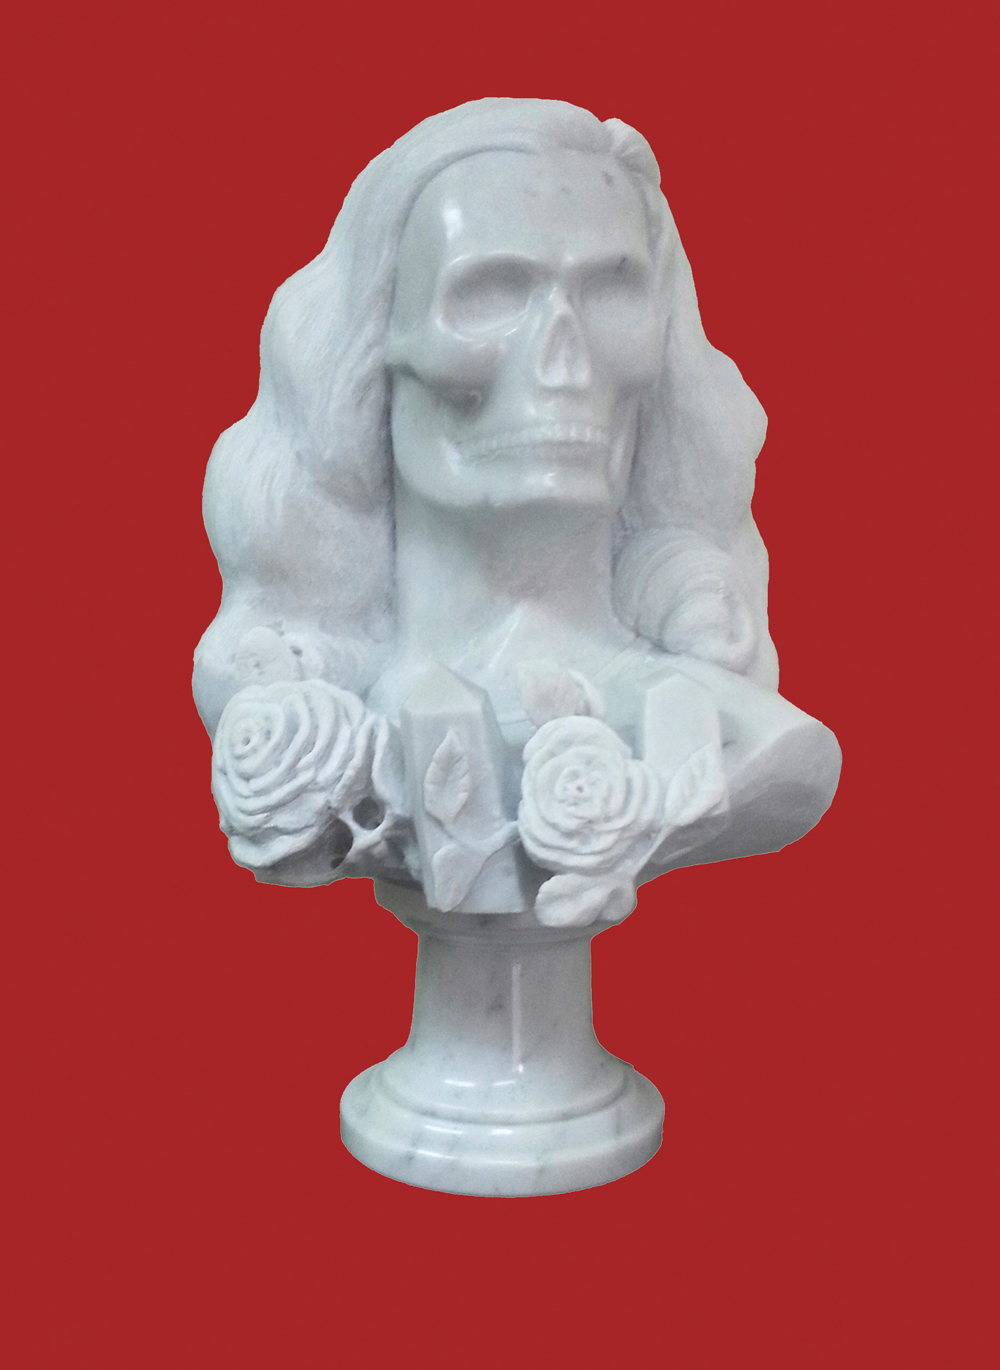 "José A. Toirac and Meira Marrero, Vanitas vanitatum, 2013, marble sculpture, 17.50"" x 13"" x 10."" All images are courtesy of Pan American Art Projects."